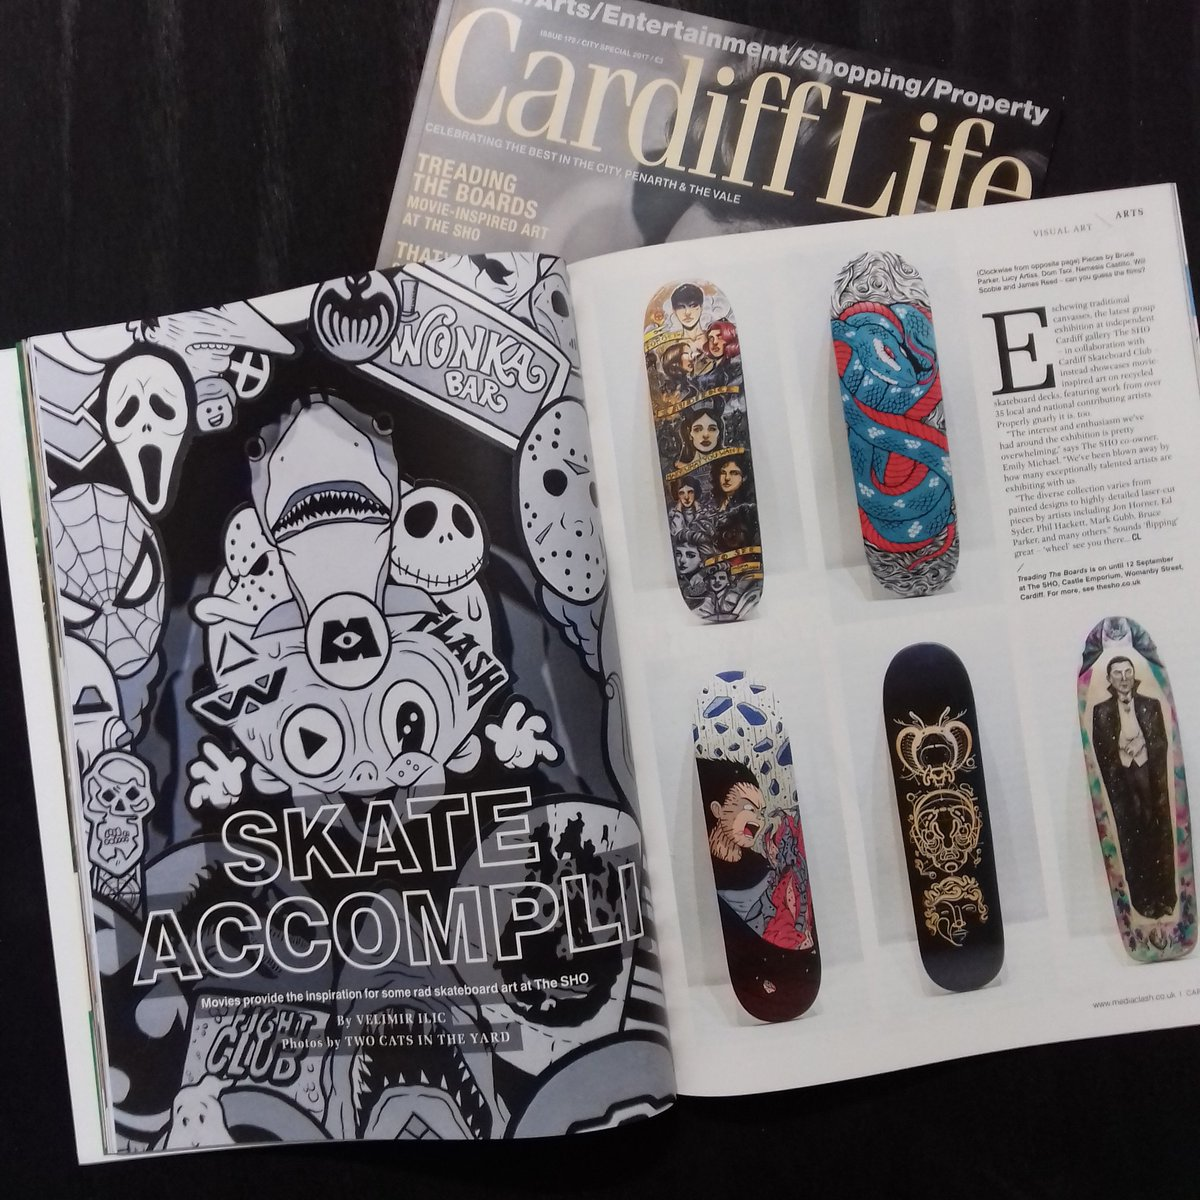 Stoked to be featured in latest issue of @CardiffLifeMag  brilliant feature on current exhibition #treadingtheboards cheers!  #Cardiff <br>http://pic.twitter.com/wtcV0foRX7